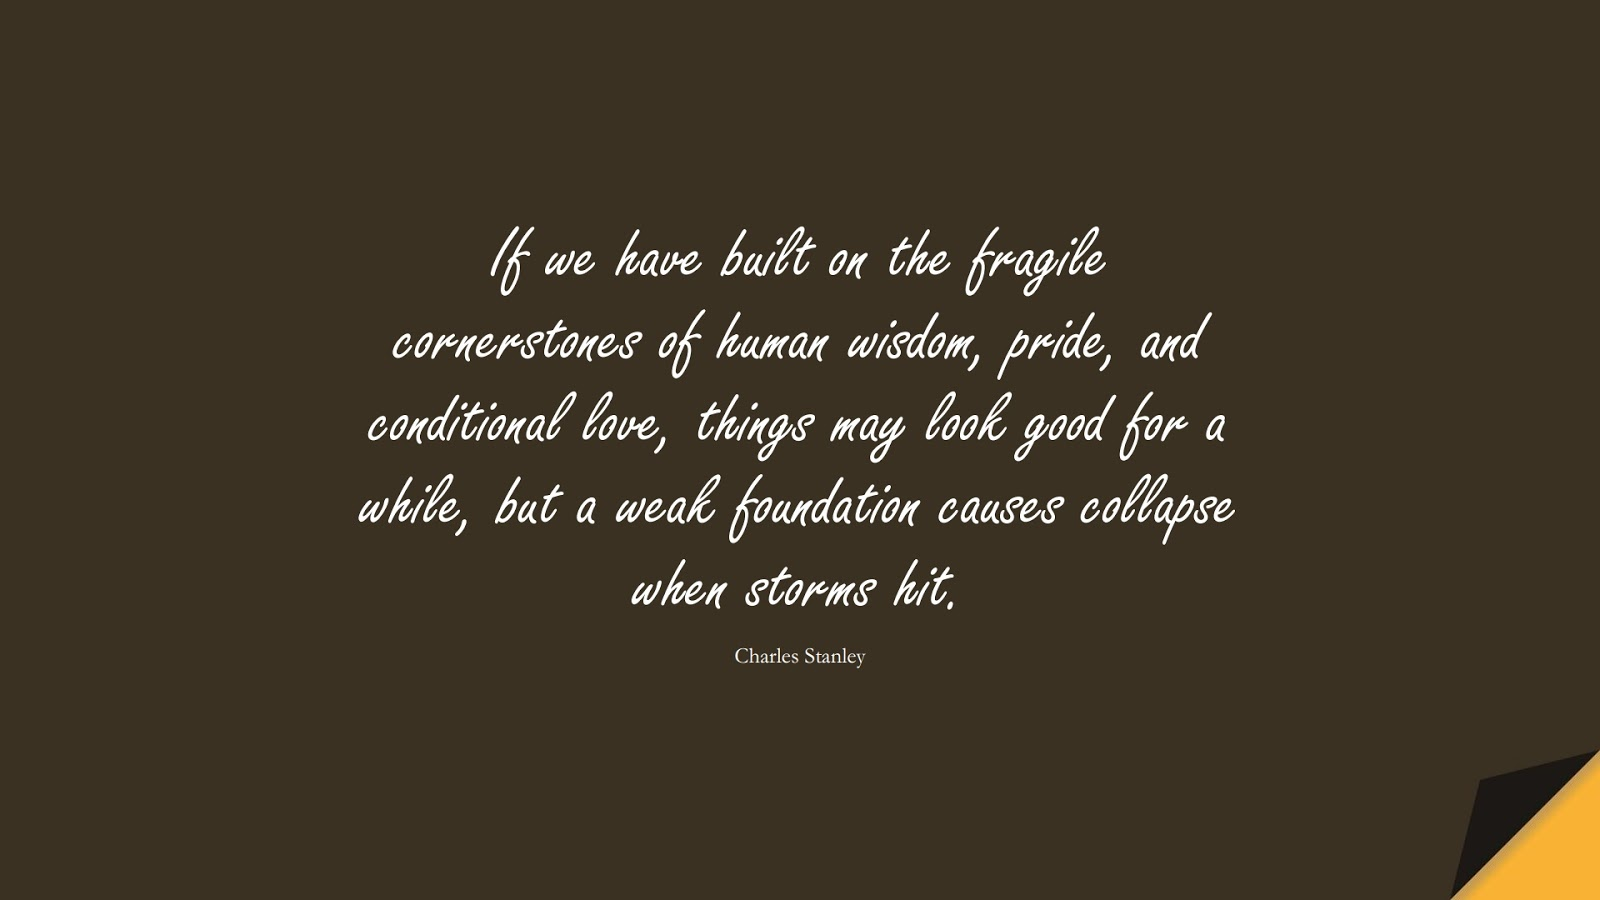 If we have built on the fragile cornerstones of human wisdom, pride, and conditional love, things may look good for a while, but a weak foundation causes collapse when storms hit. (Charles Stanley);  #WordsofWisdom